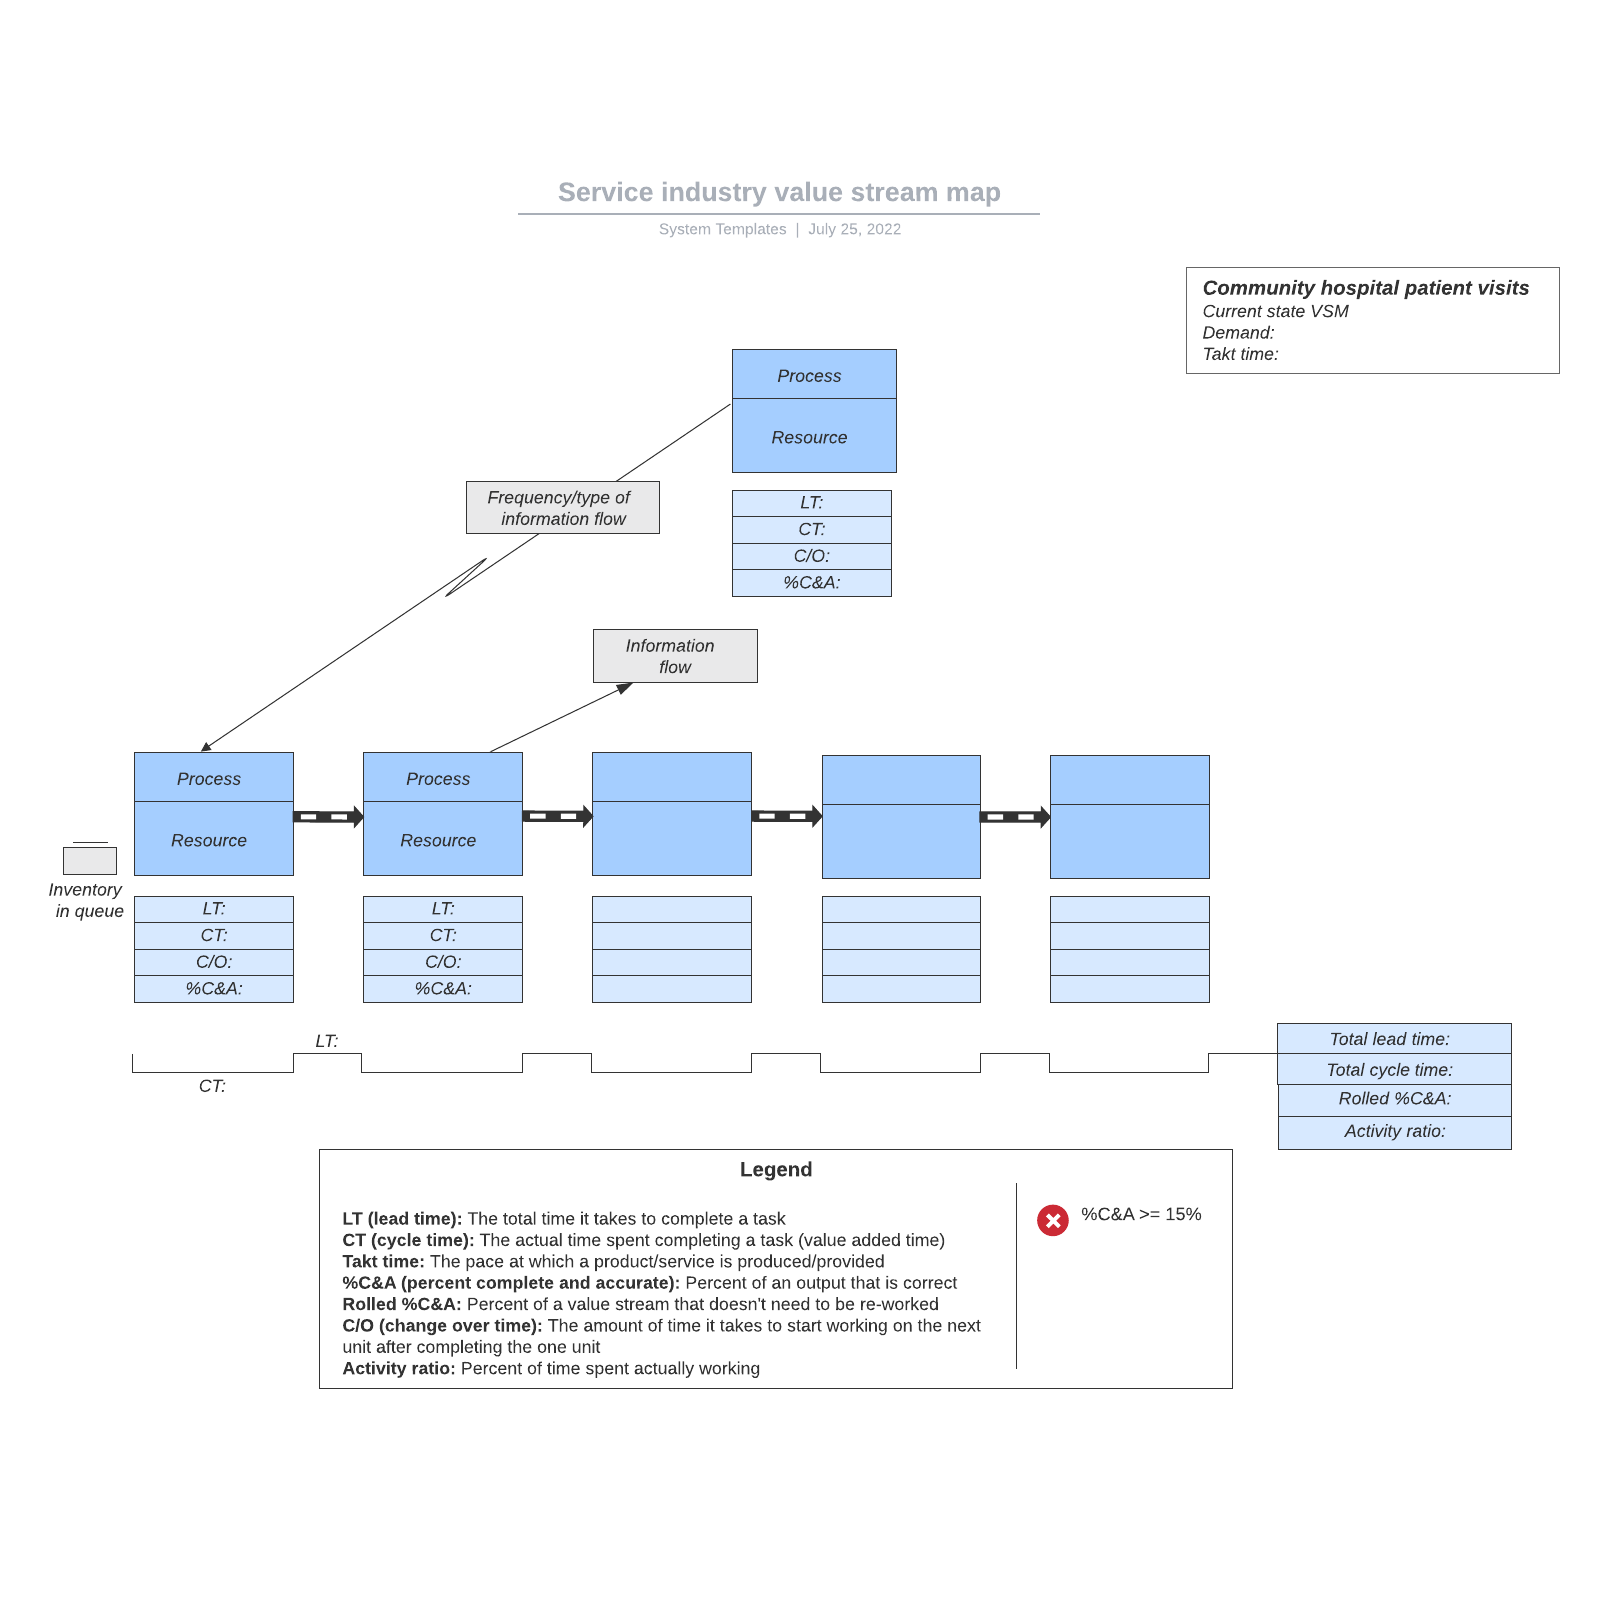 Service industry value stream map